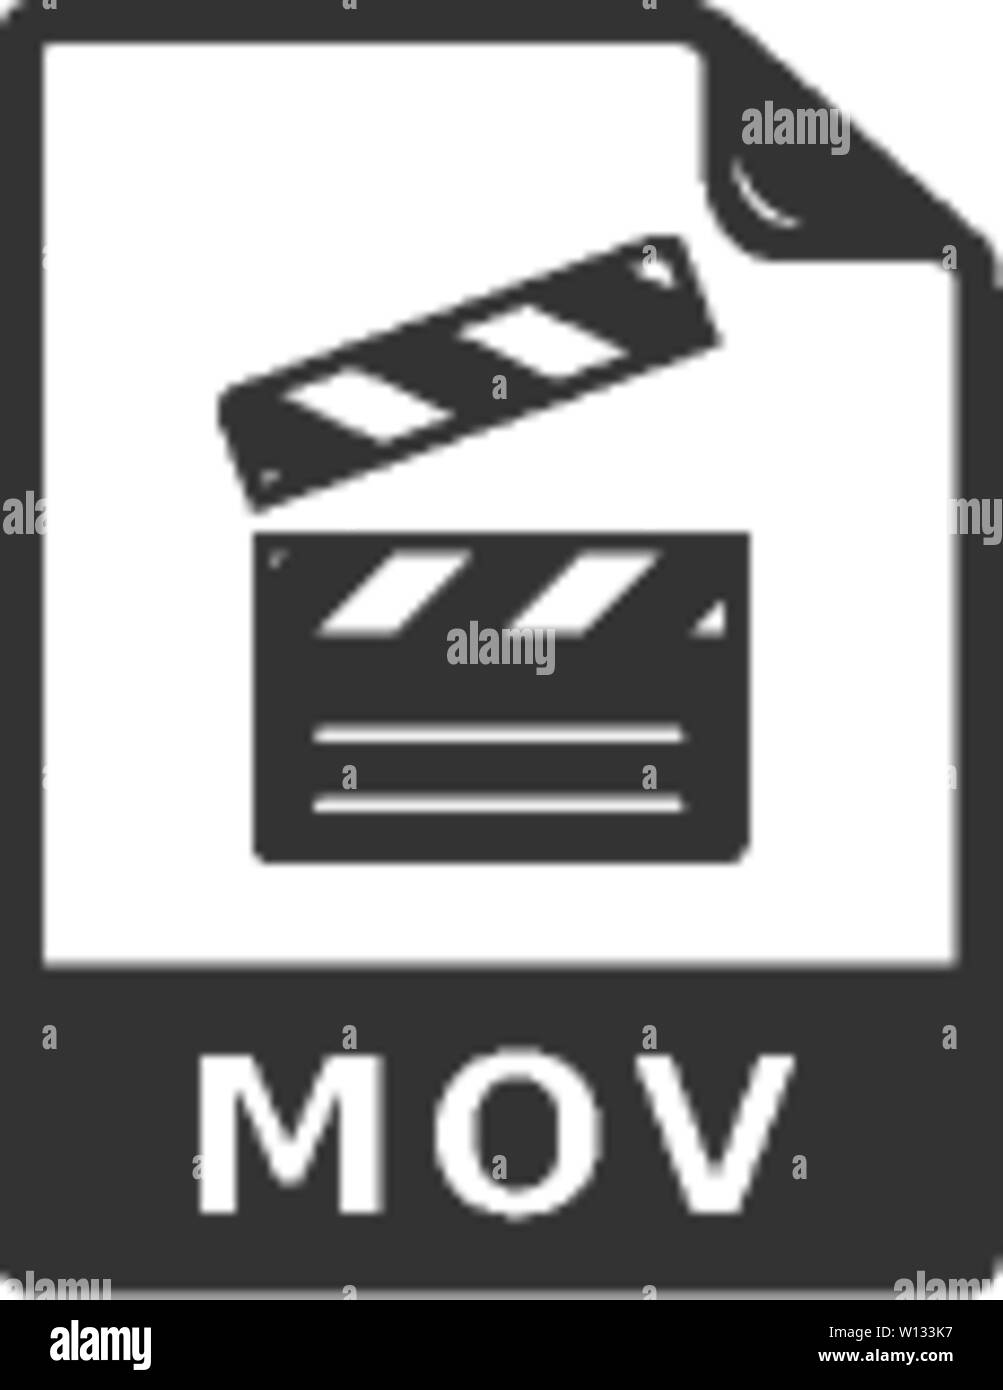 Video file format icon in single grey color  Computer data